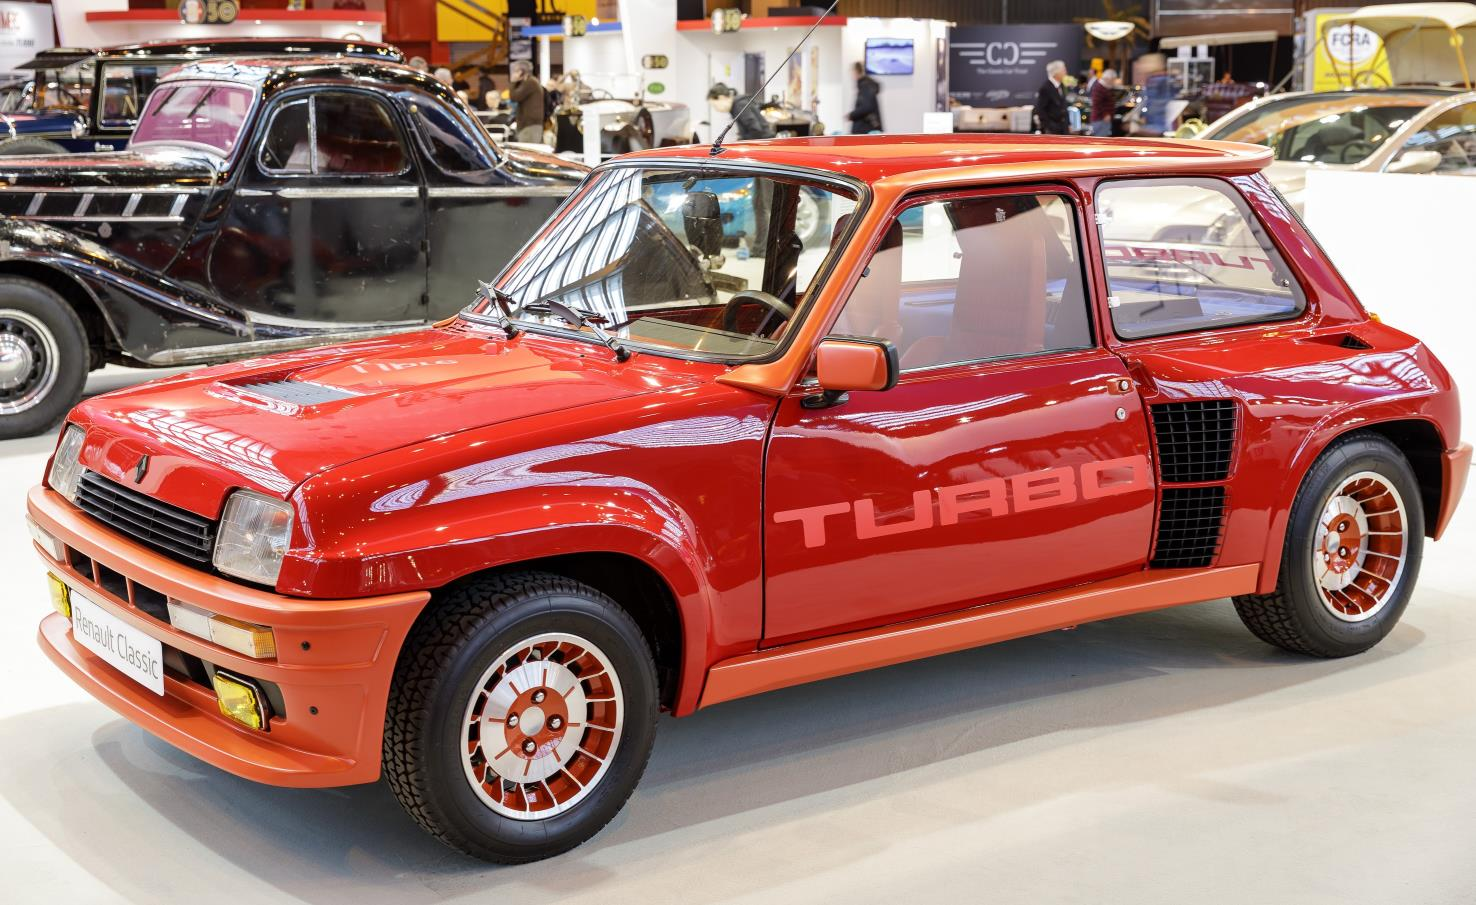 Renault 5 Turbo side view red